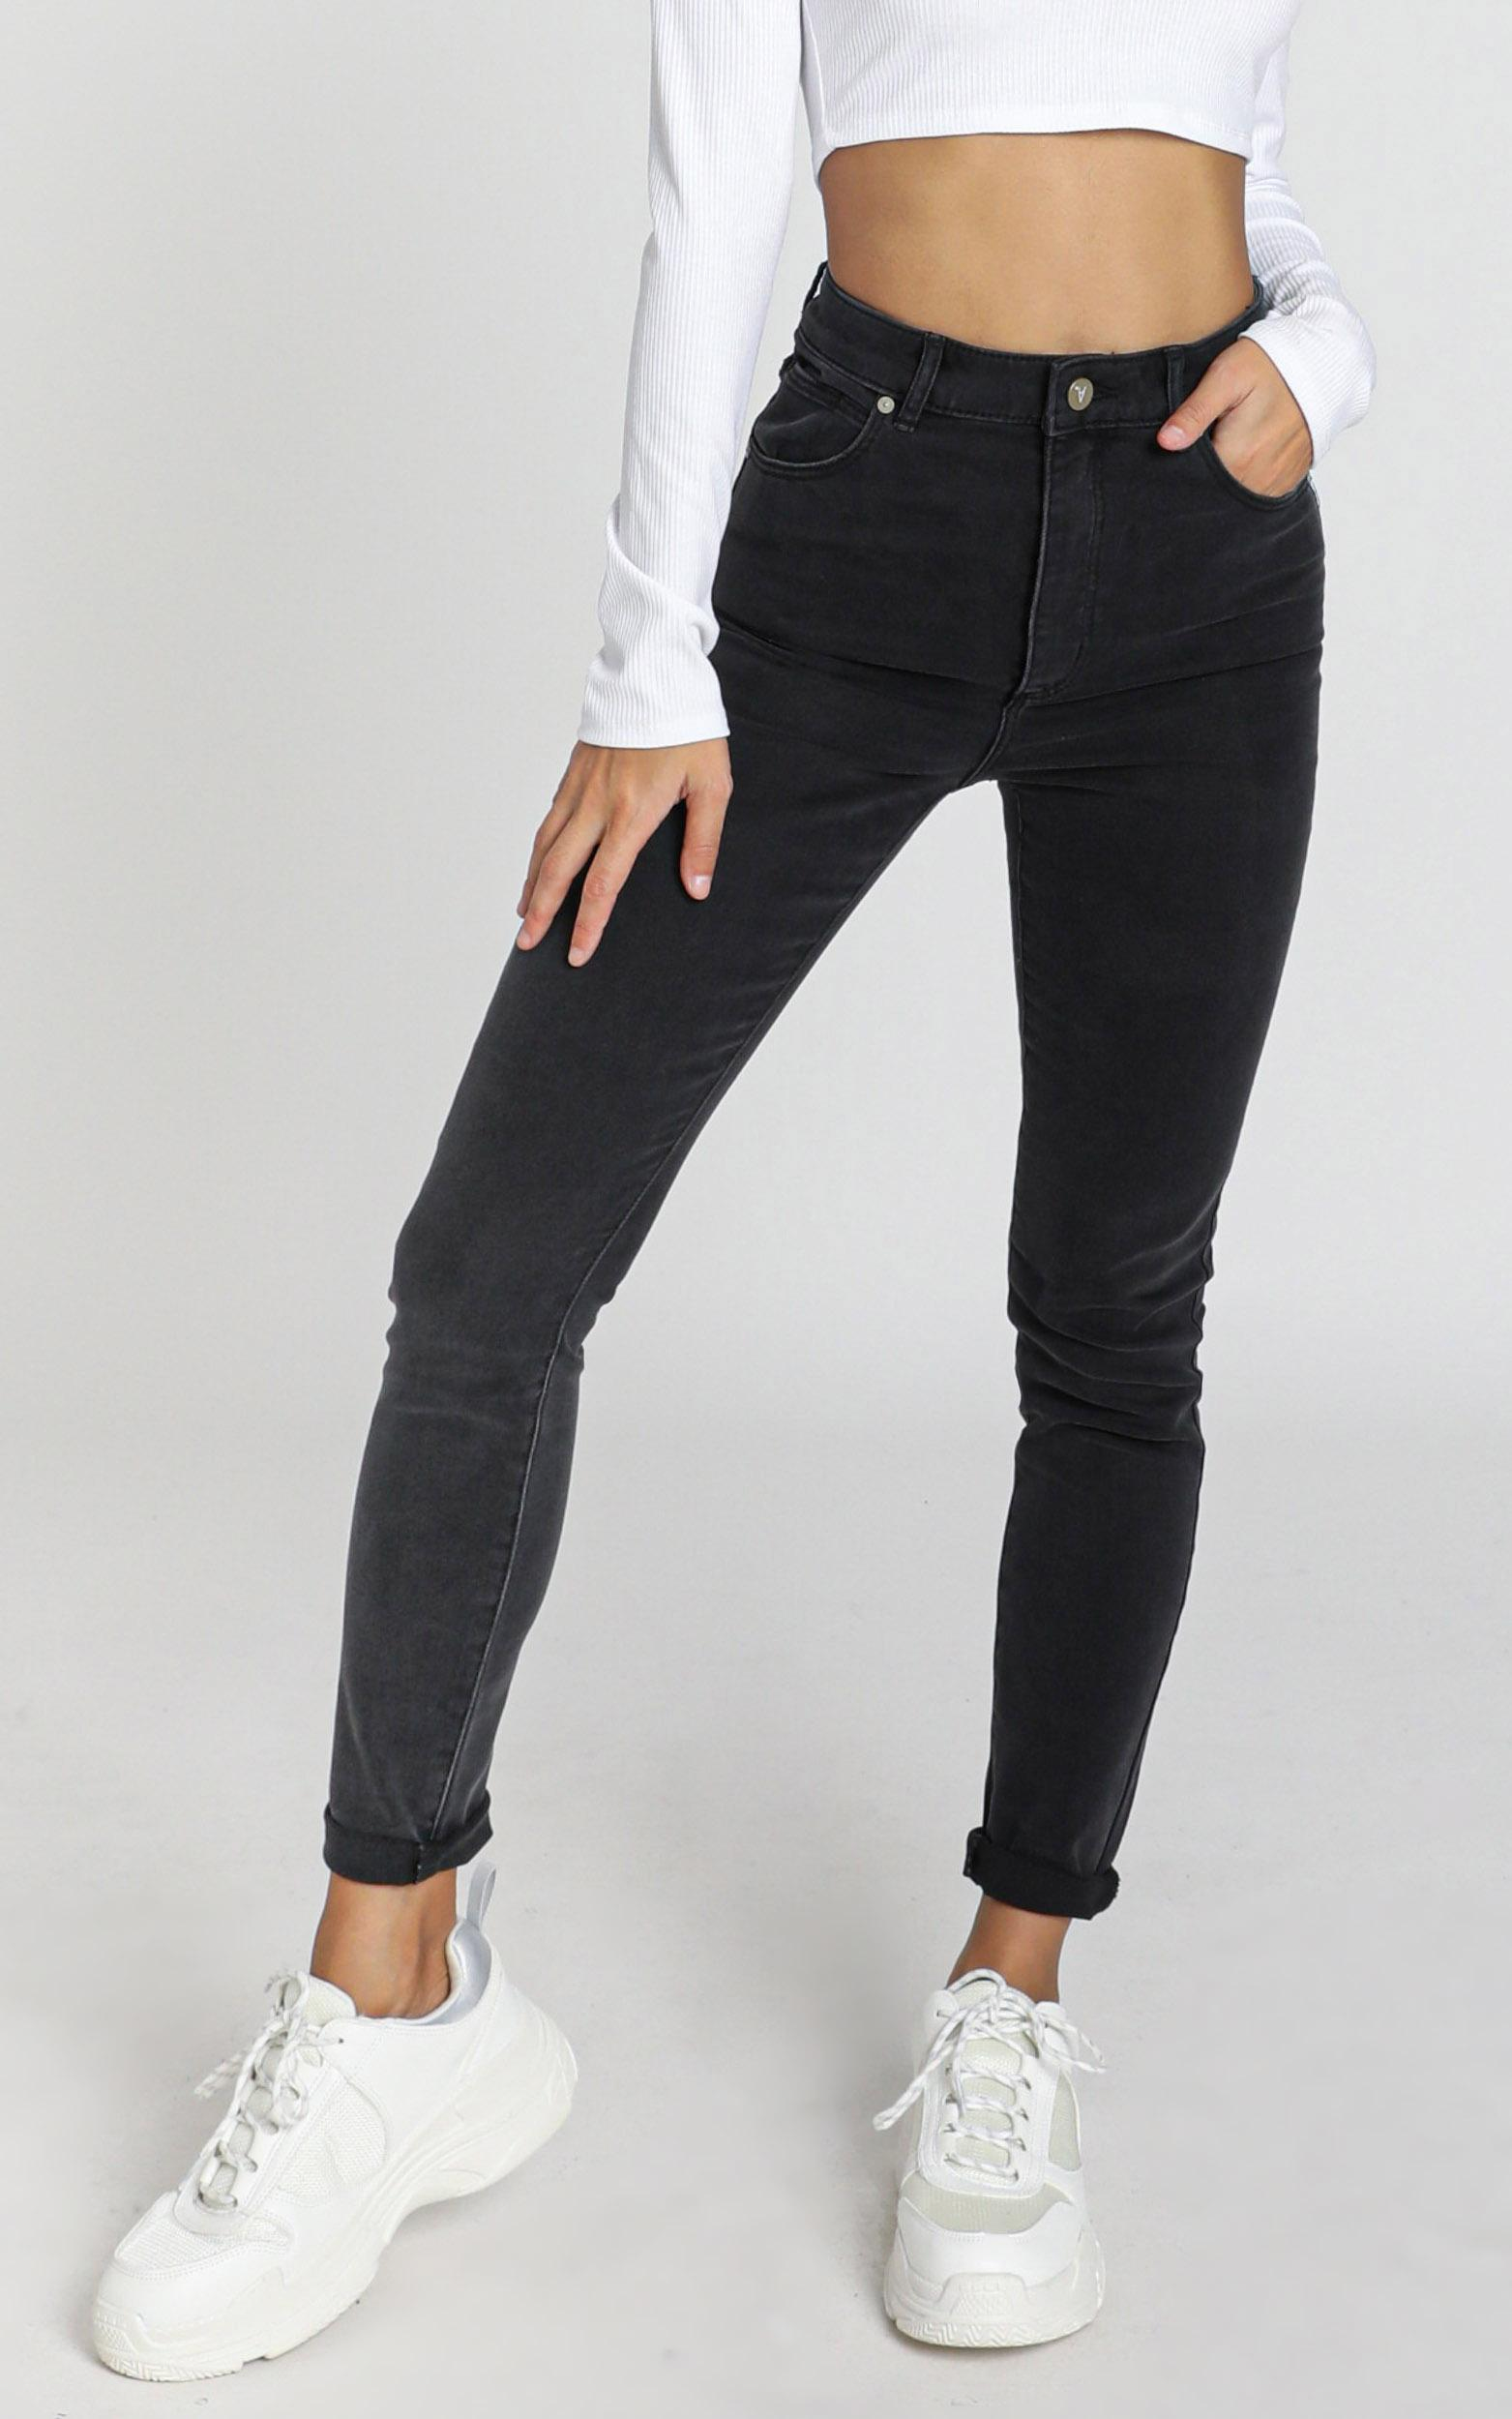 Abrand - A High Skinny Ankle Basher Jeans in graphite - 14 (XL), Black, hi-res image number null